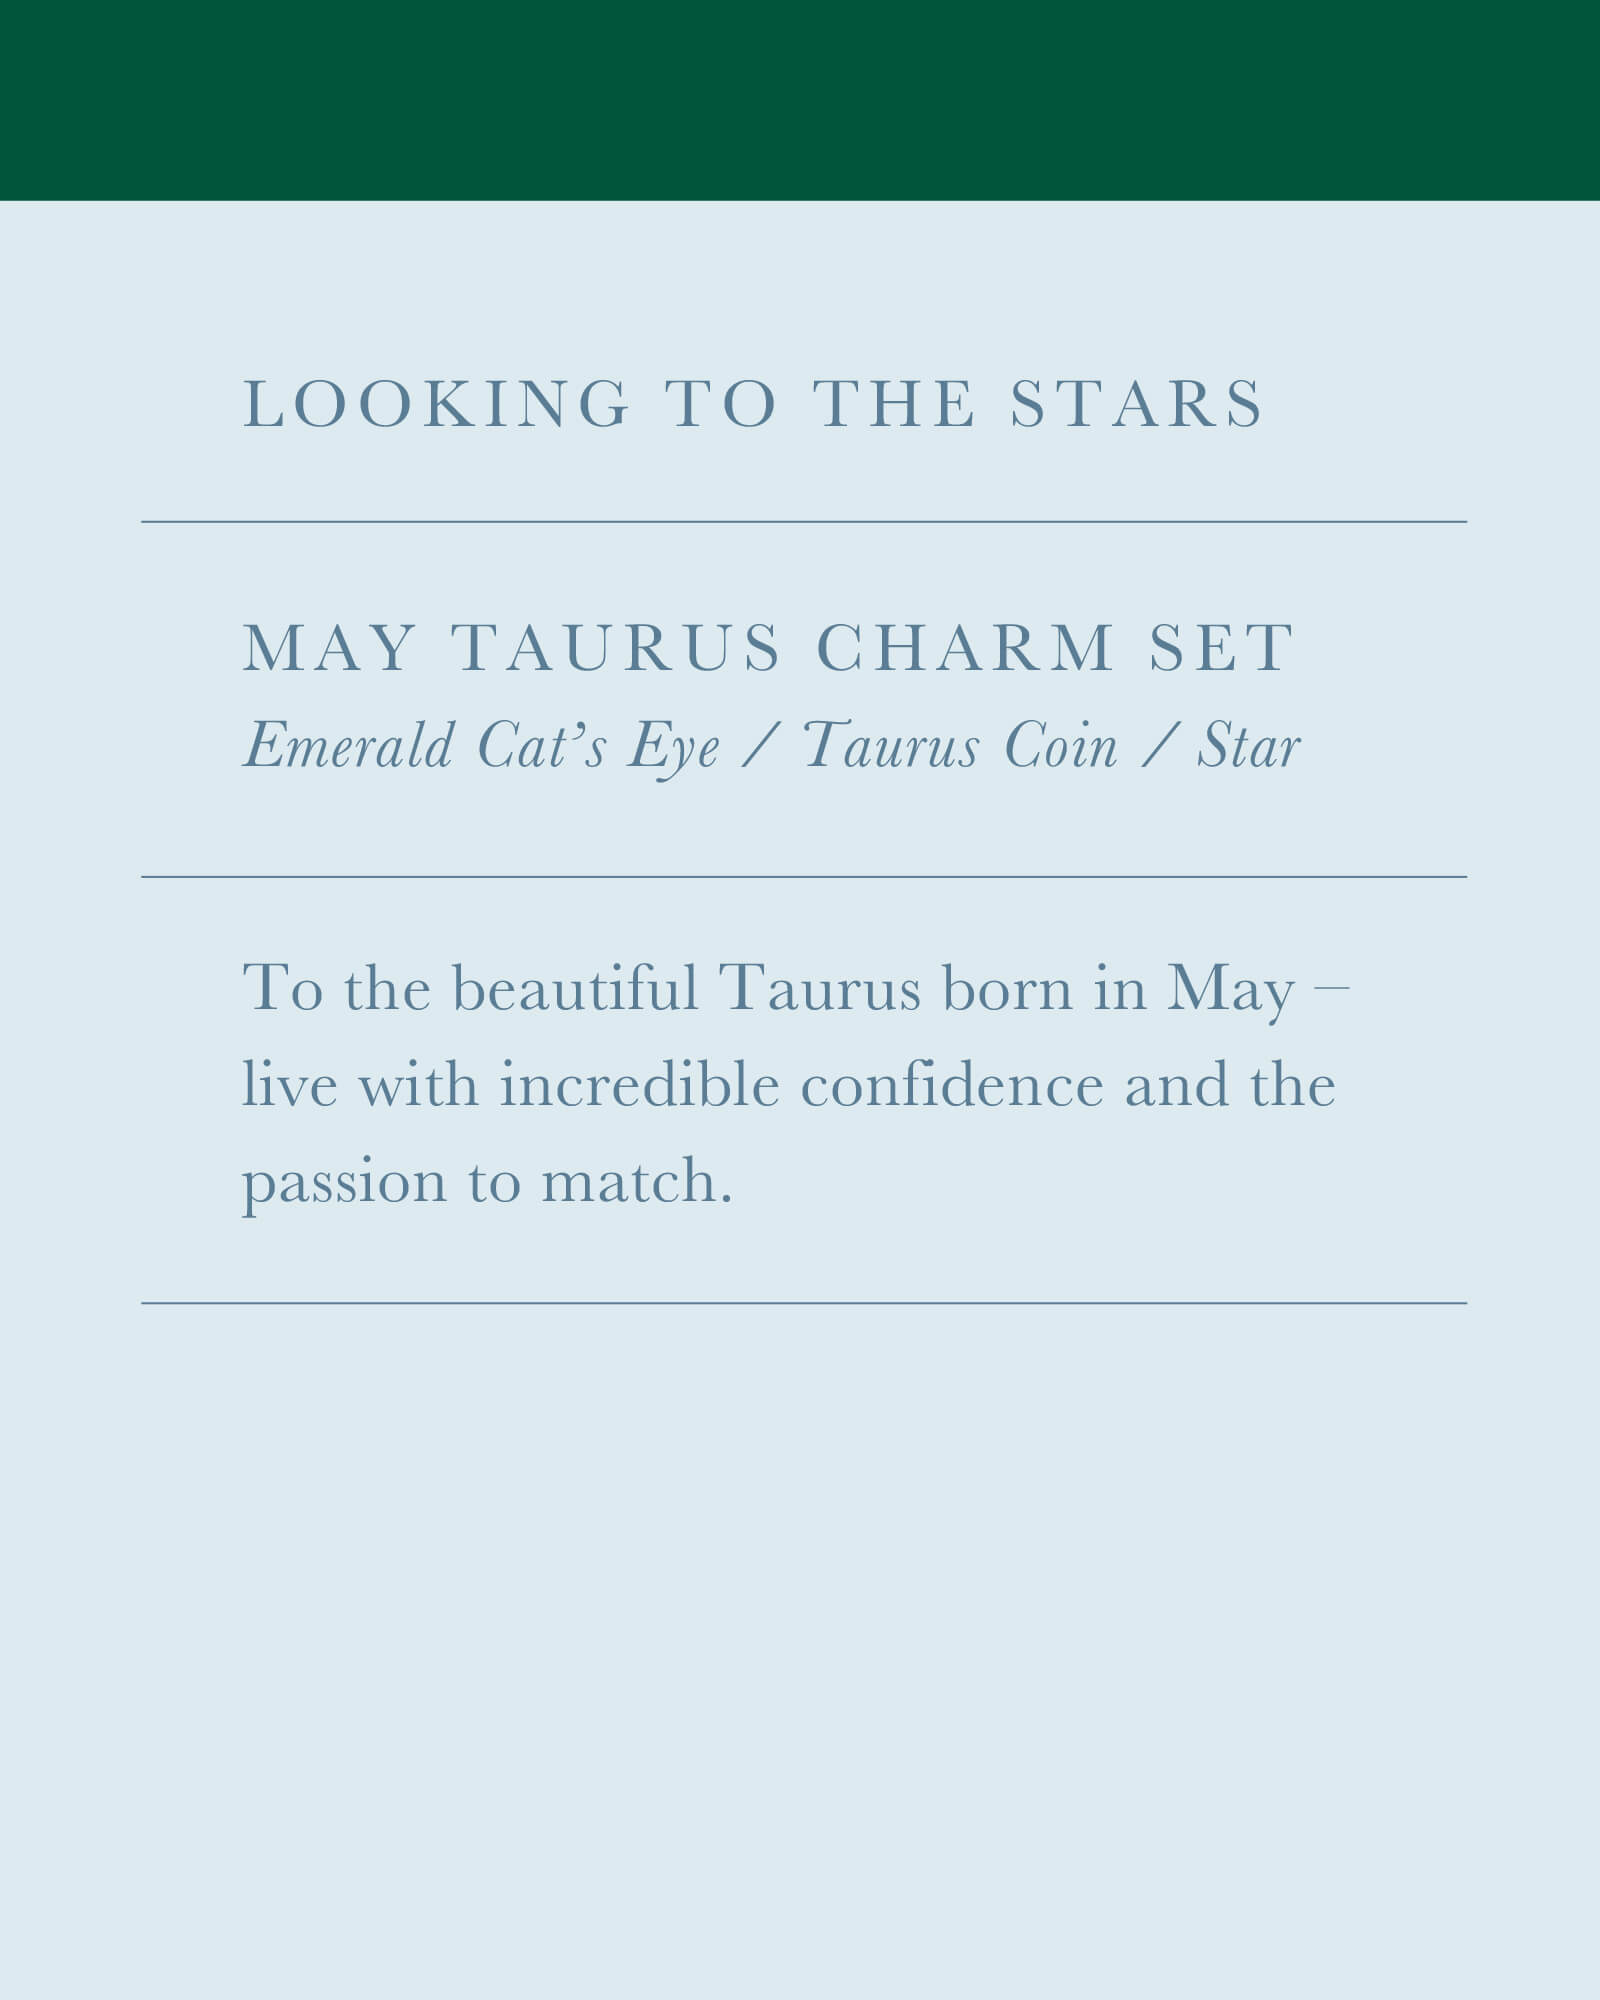 May Taurus Charm Necklace Set in Silver